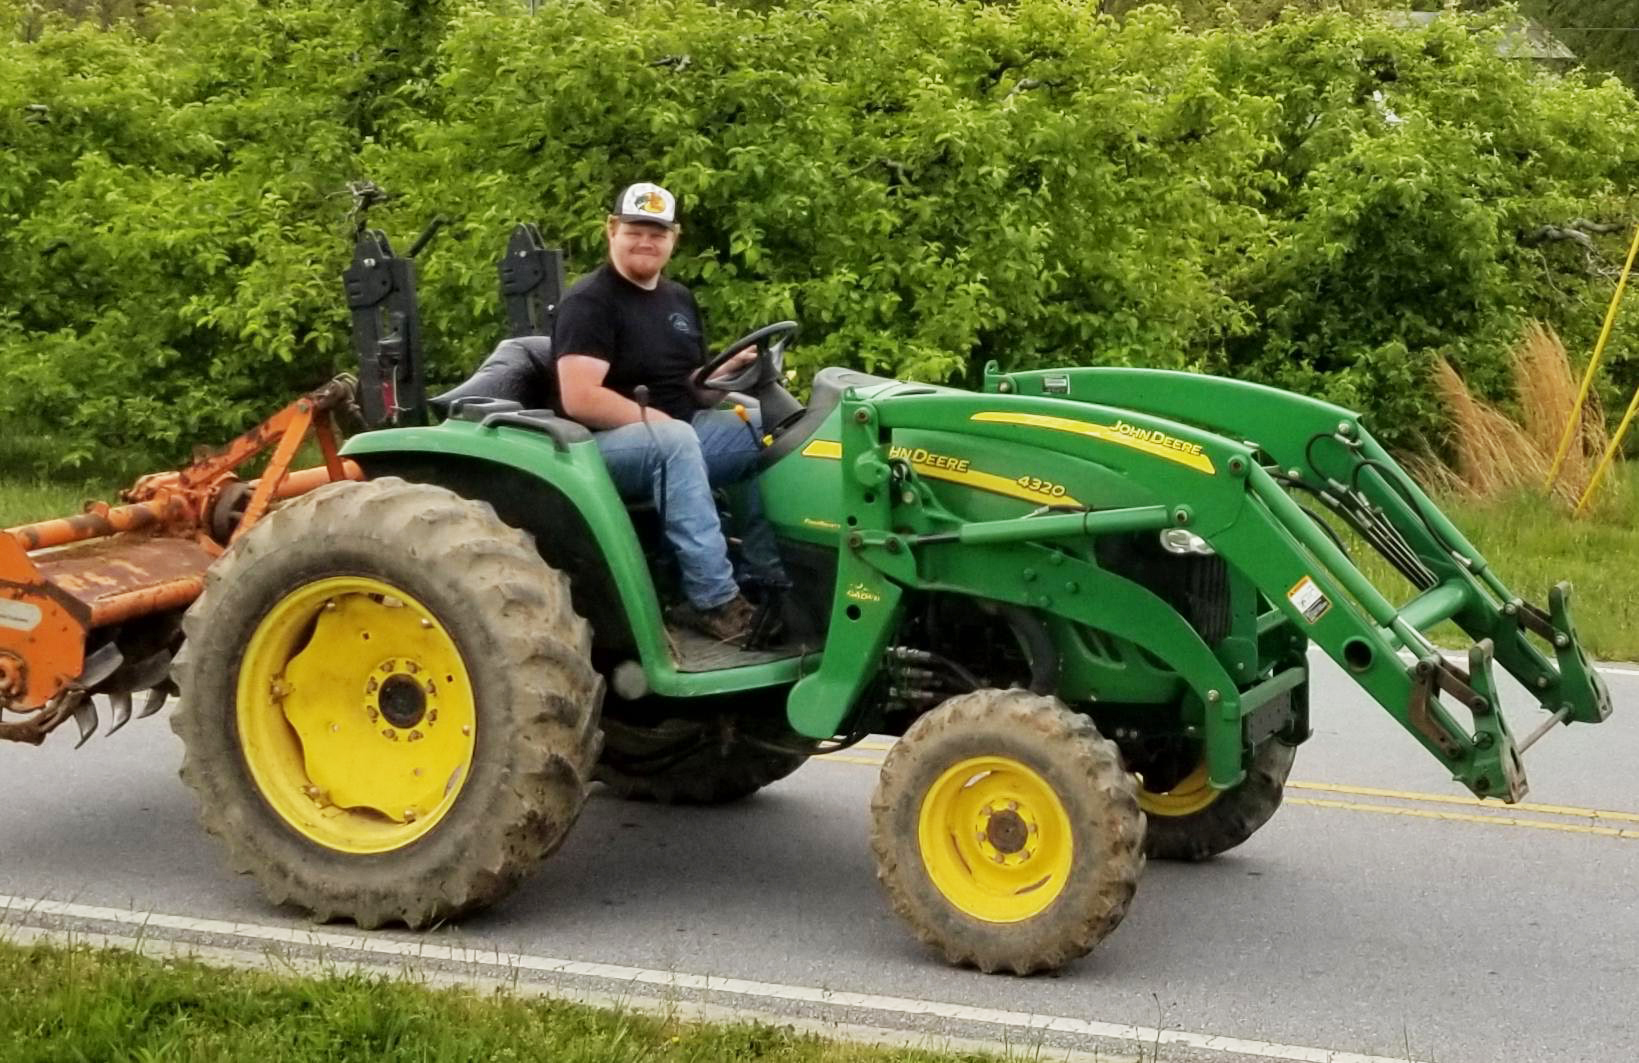 Aaron Corn on a tractor